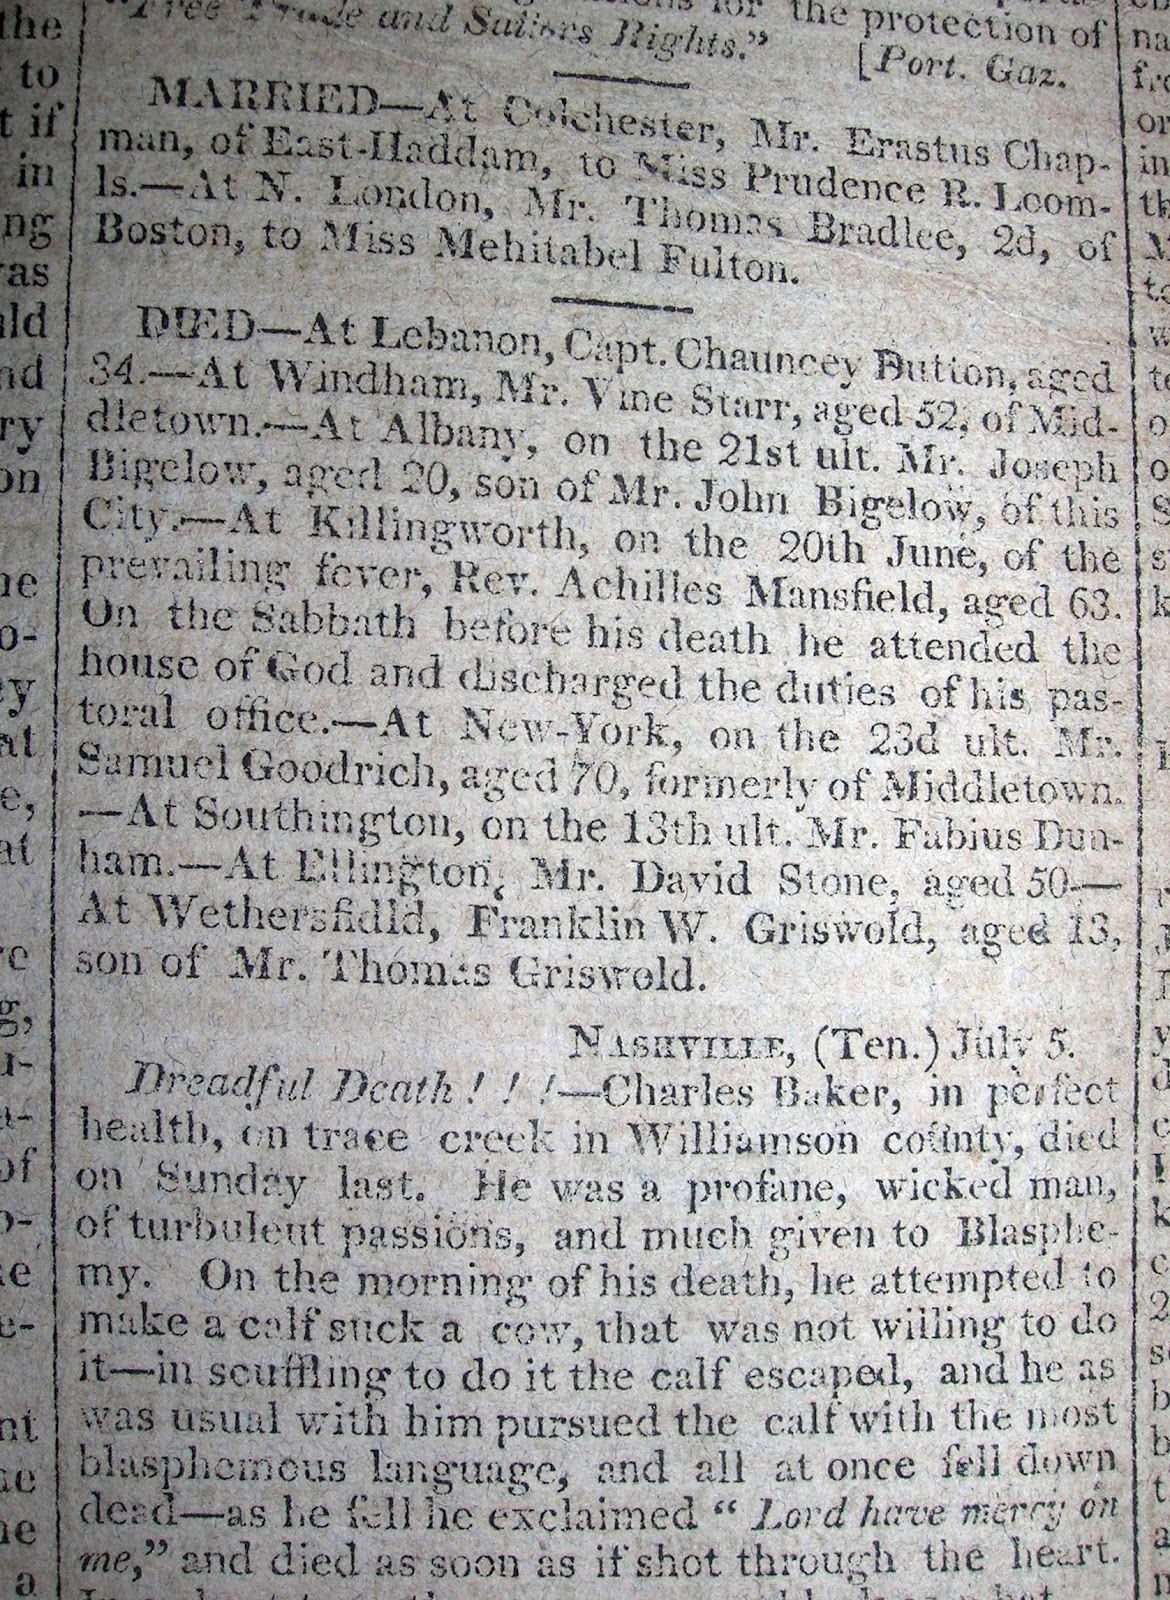 newspaper articles of the 1800s